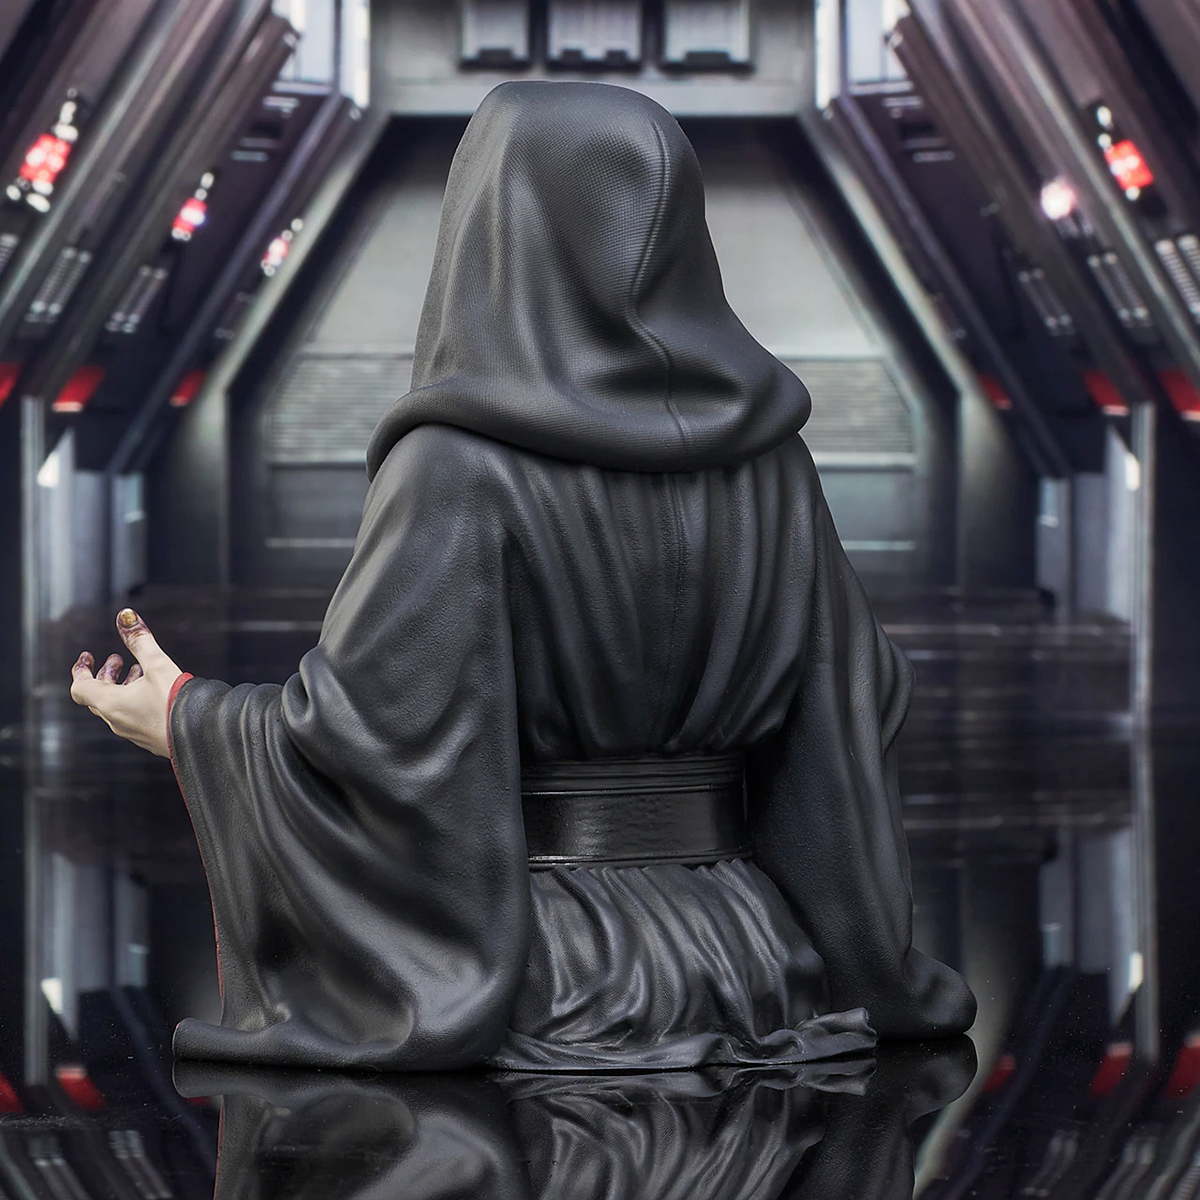 Busto Emperor Palpatine Mini-Bust Star Wars-The Rise of Skywalker